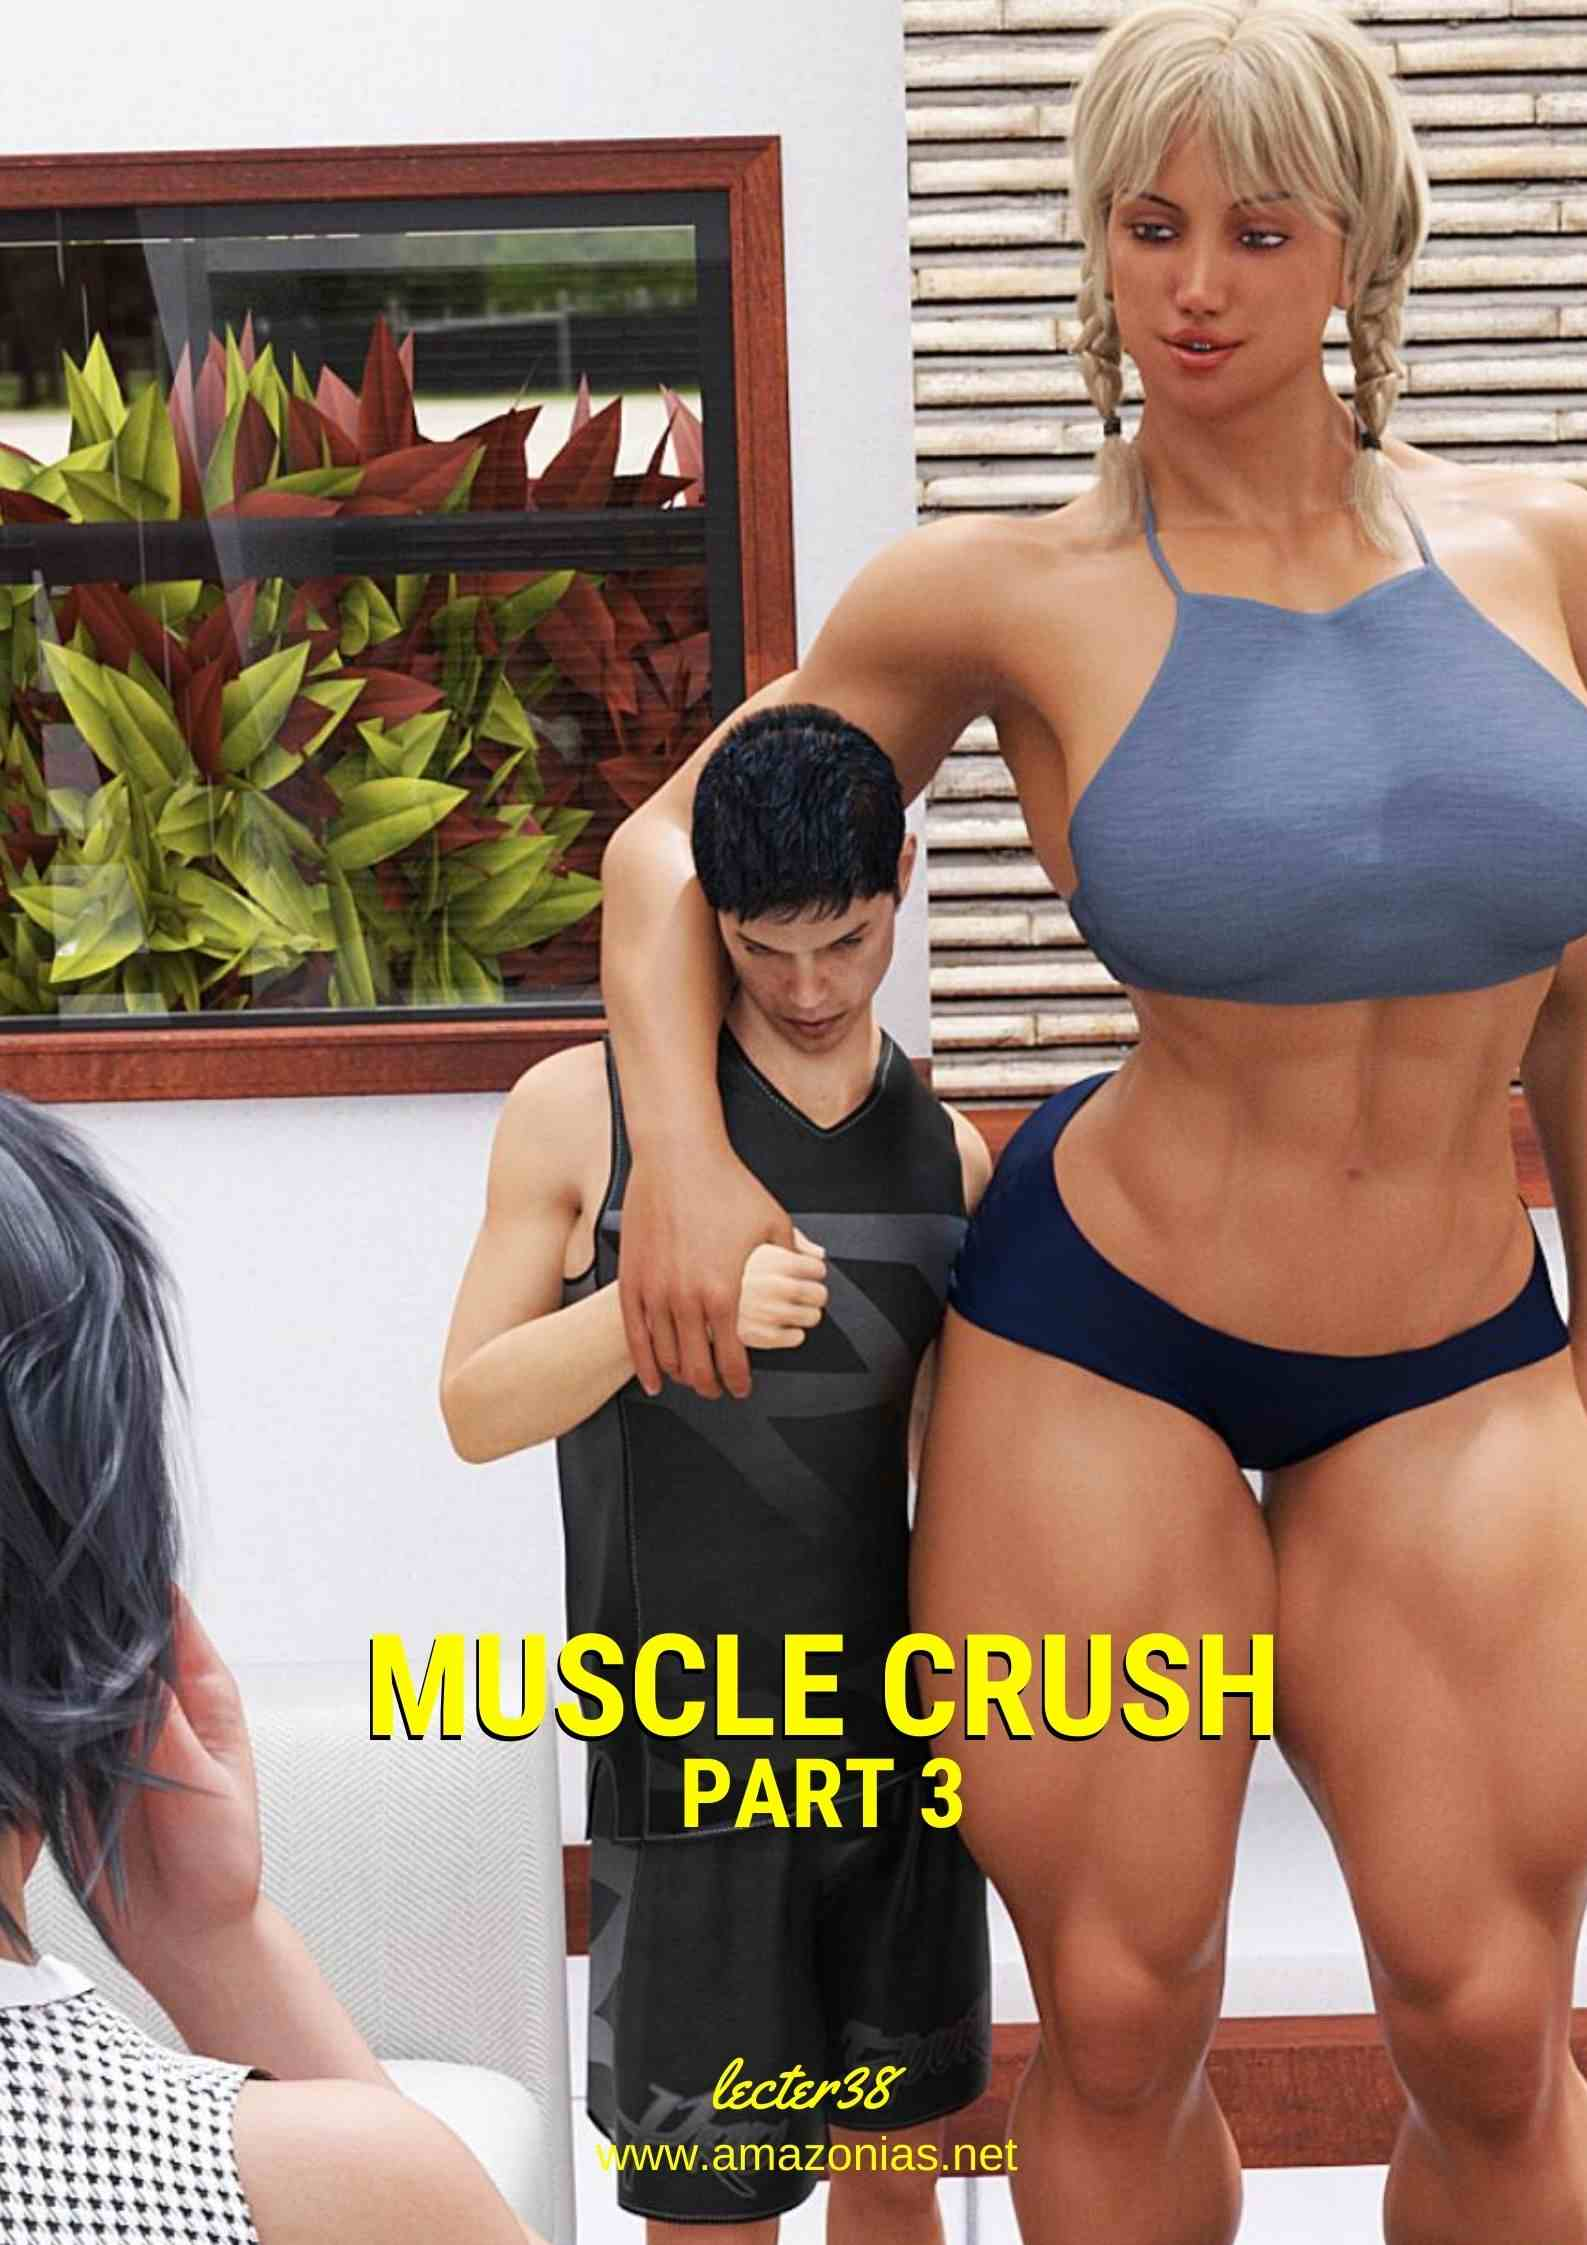 huge female bodybuilder and short man